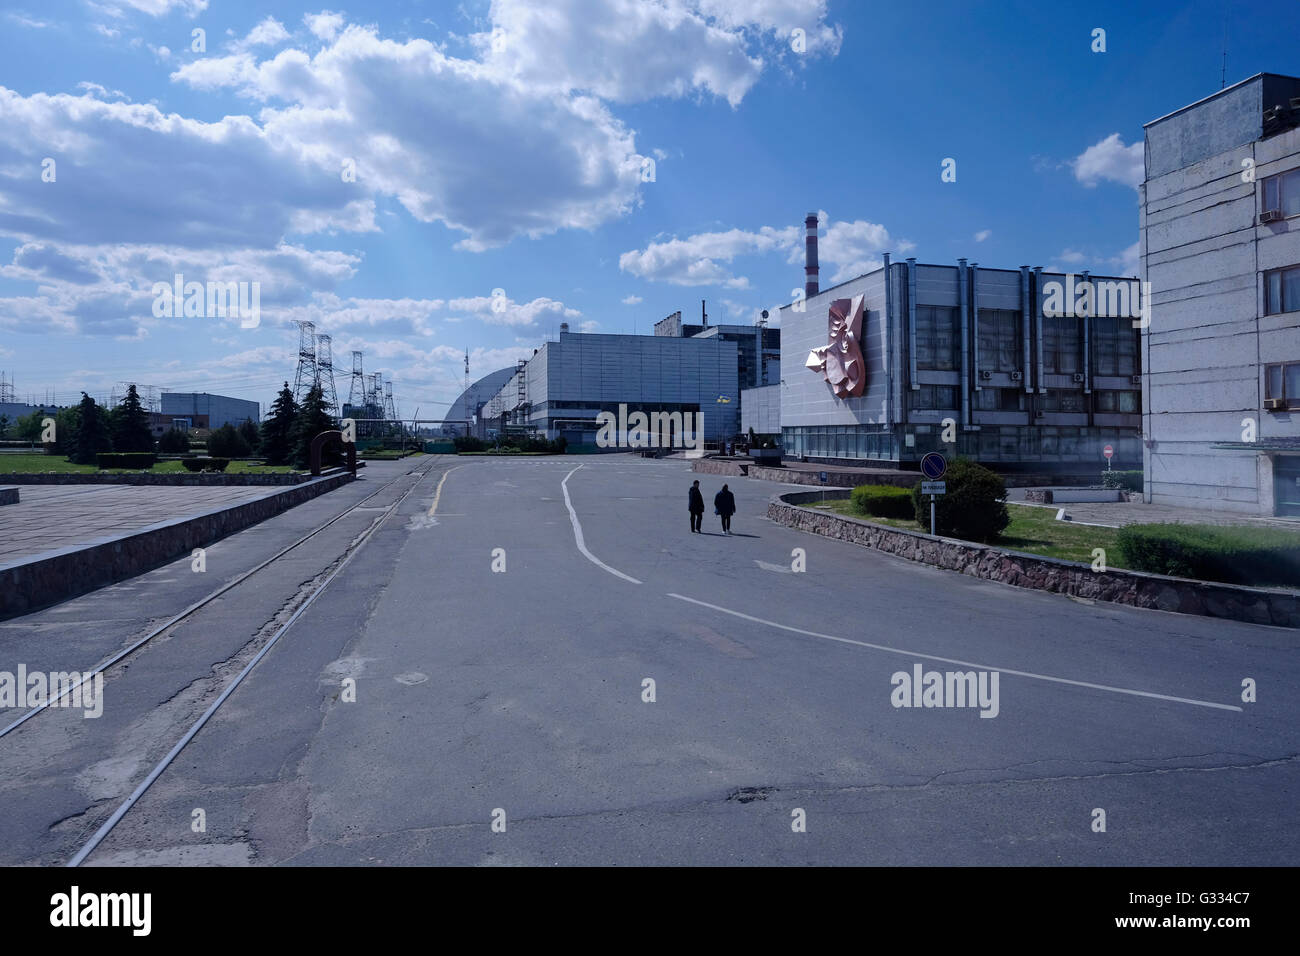 View of the Chernobyl plant inside the Chernobyl Exclusion Zone in Ukraine on 04 June 2016. The Chernobyl accident - Stock Image